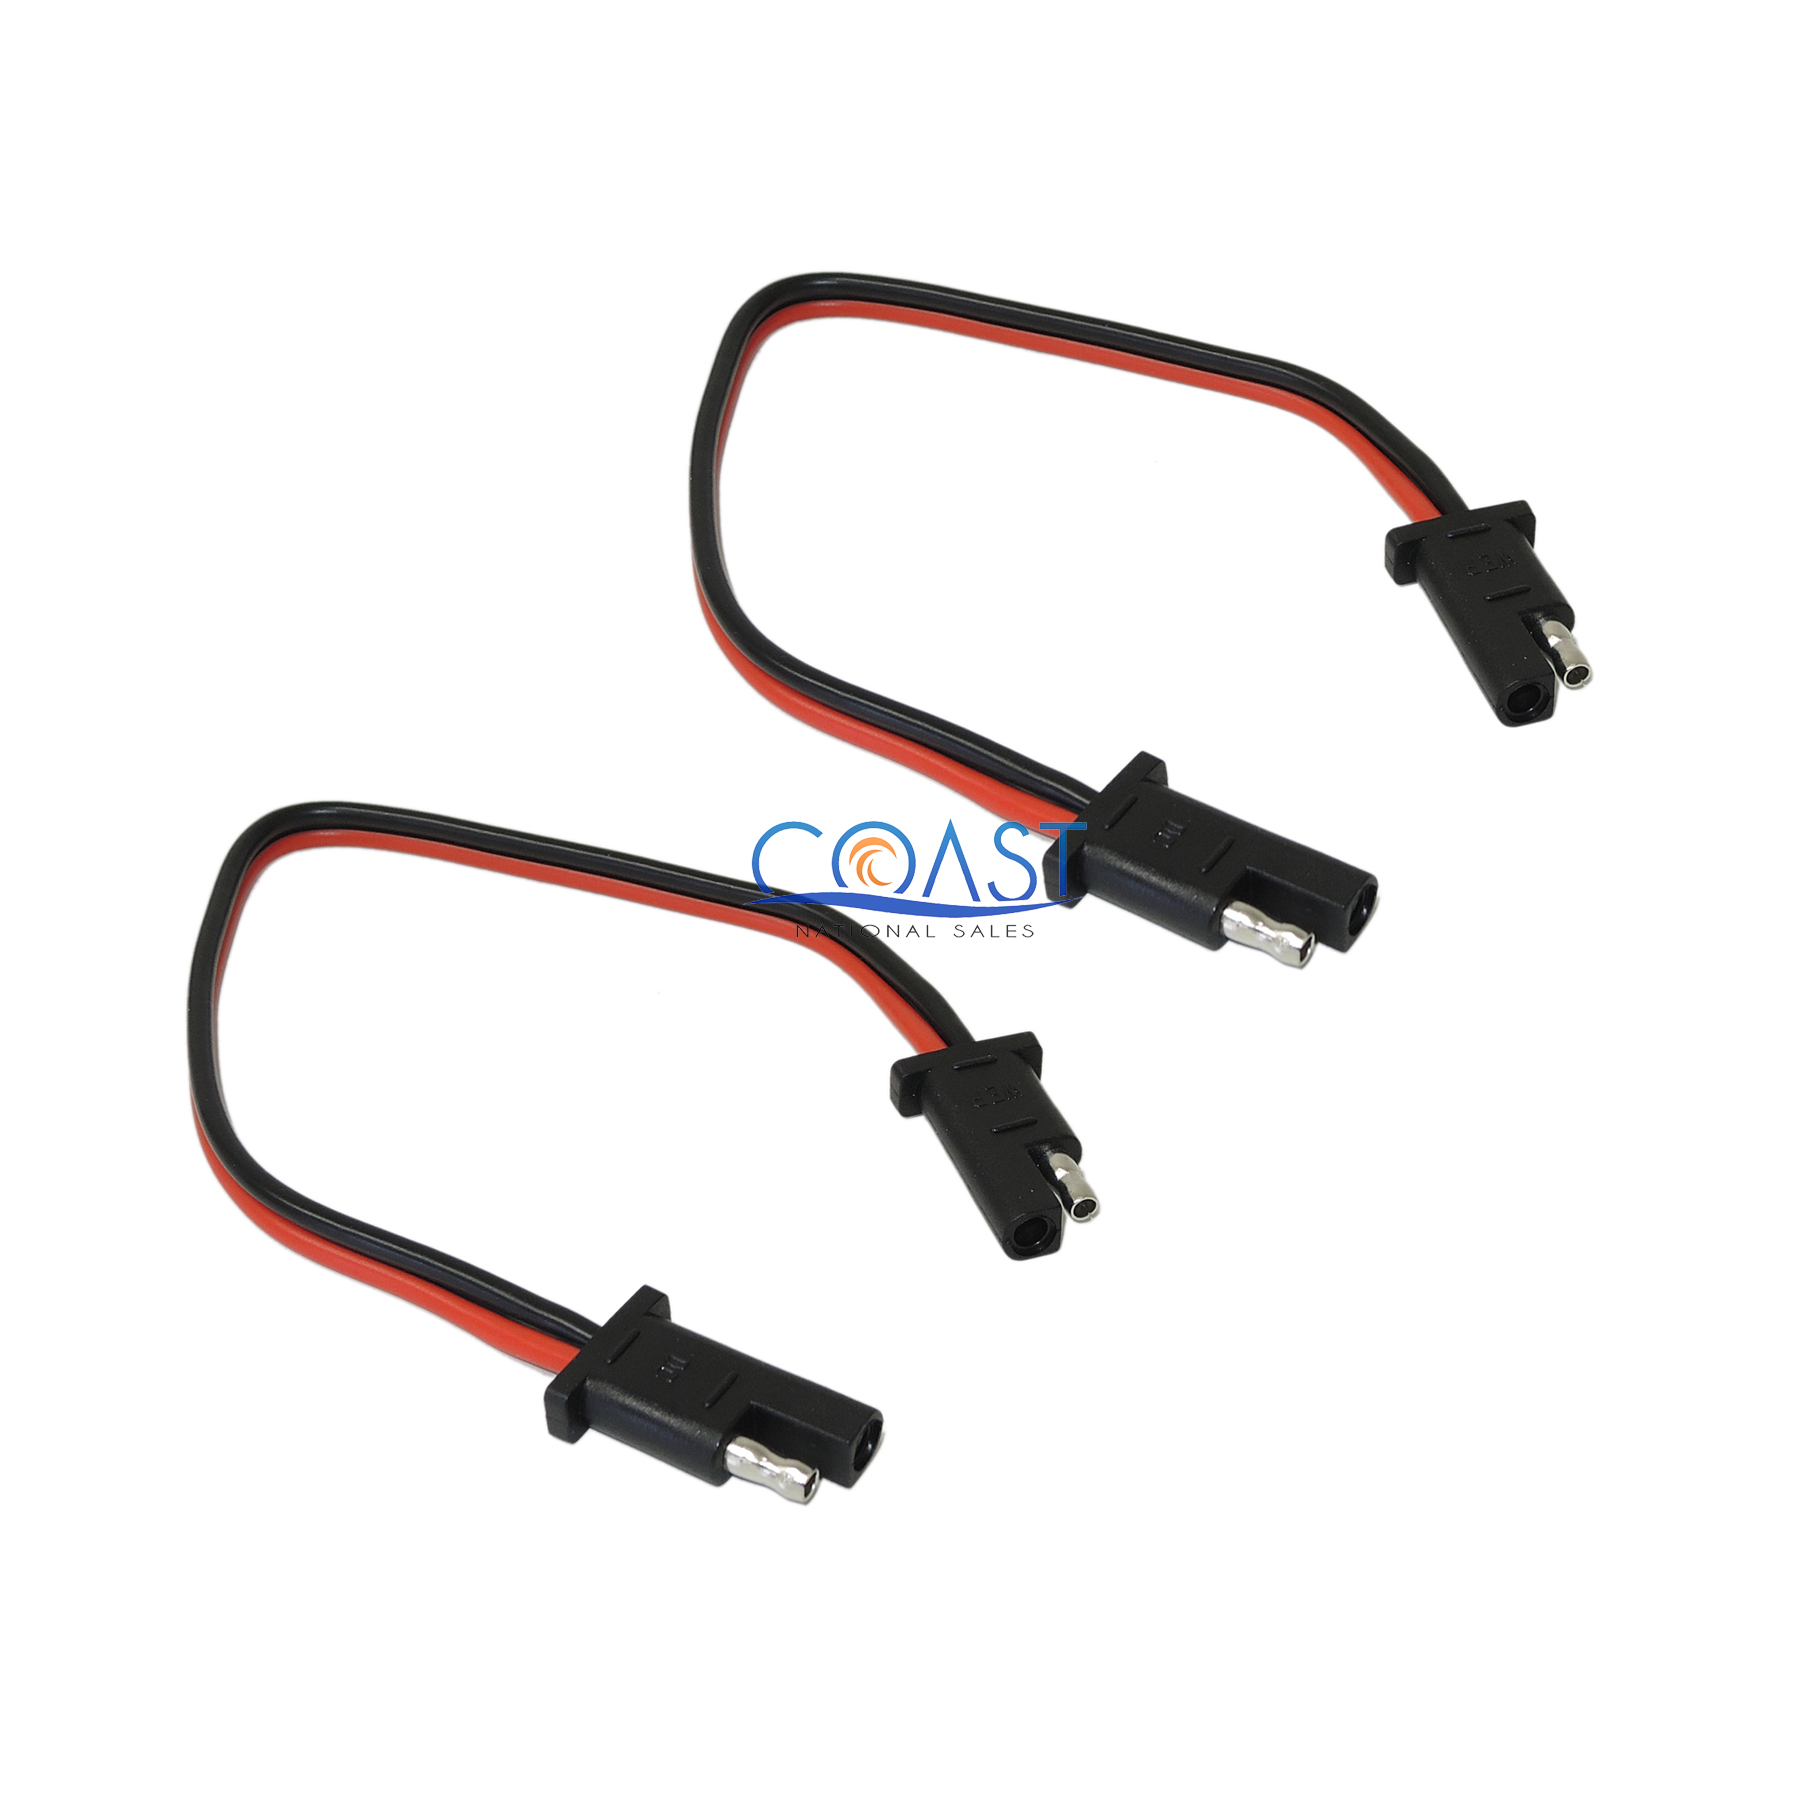 2pc 10 Gauge Car Quick Disconnect Connect 2-Pin SAE Waterproof Wire Harness Plug